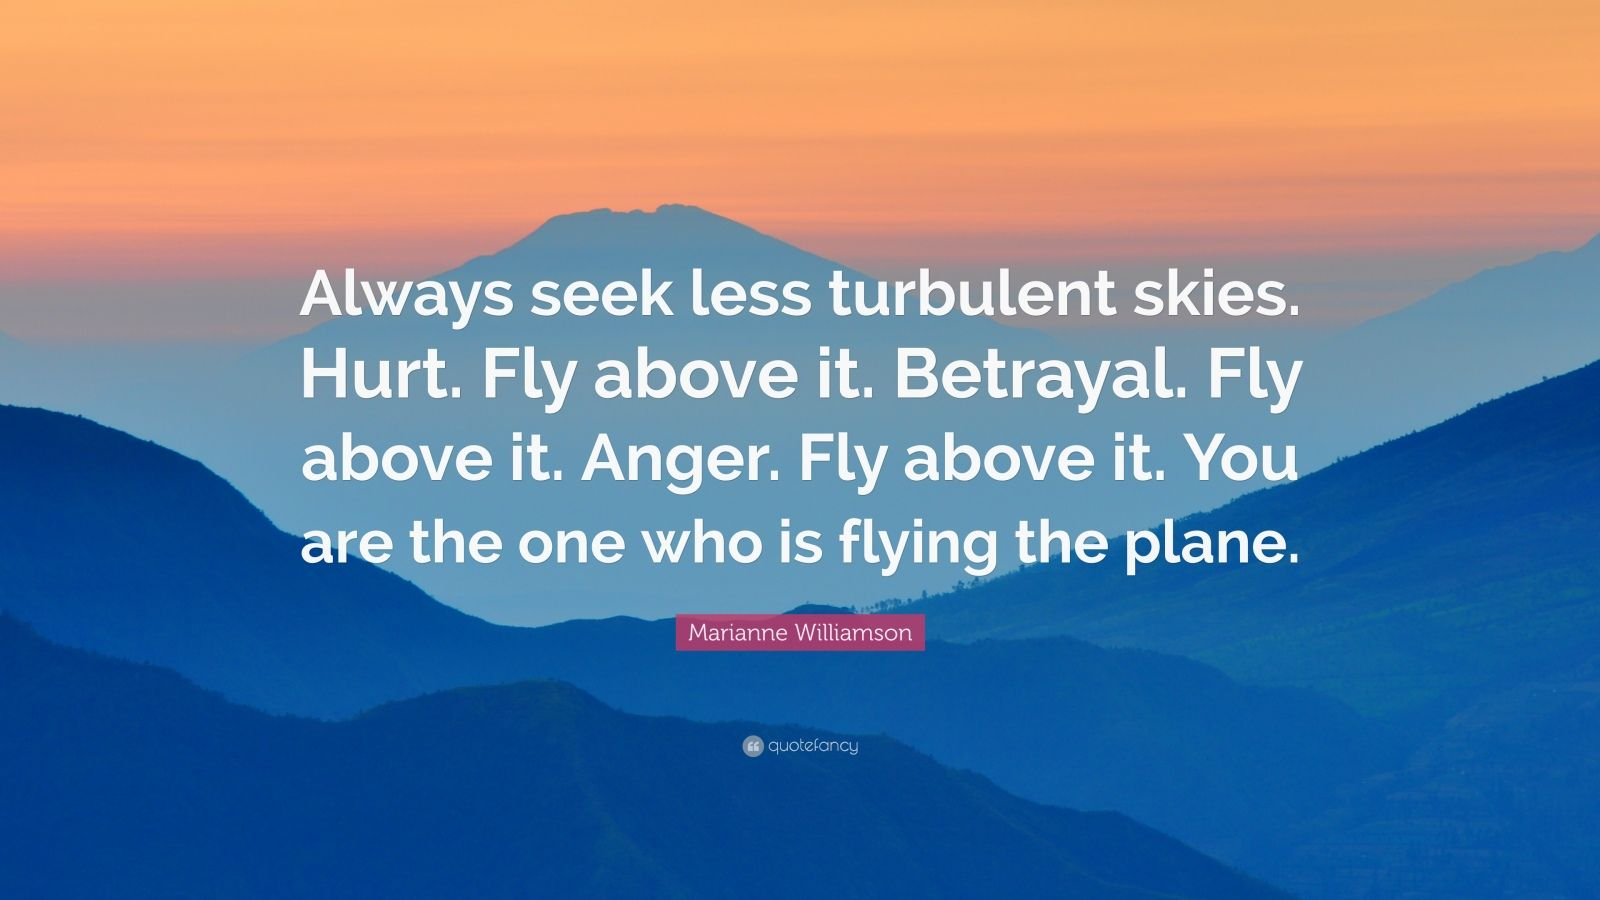 "Marianne Williamson Quote: ""Always seek less turbulent skies. Hurt. Fly above it. Betrayal. Fly above it. Anger. Fly above it. You are the one who is flying the plane."""